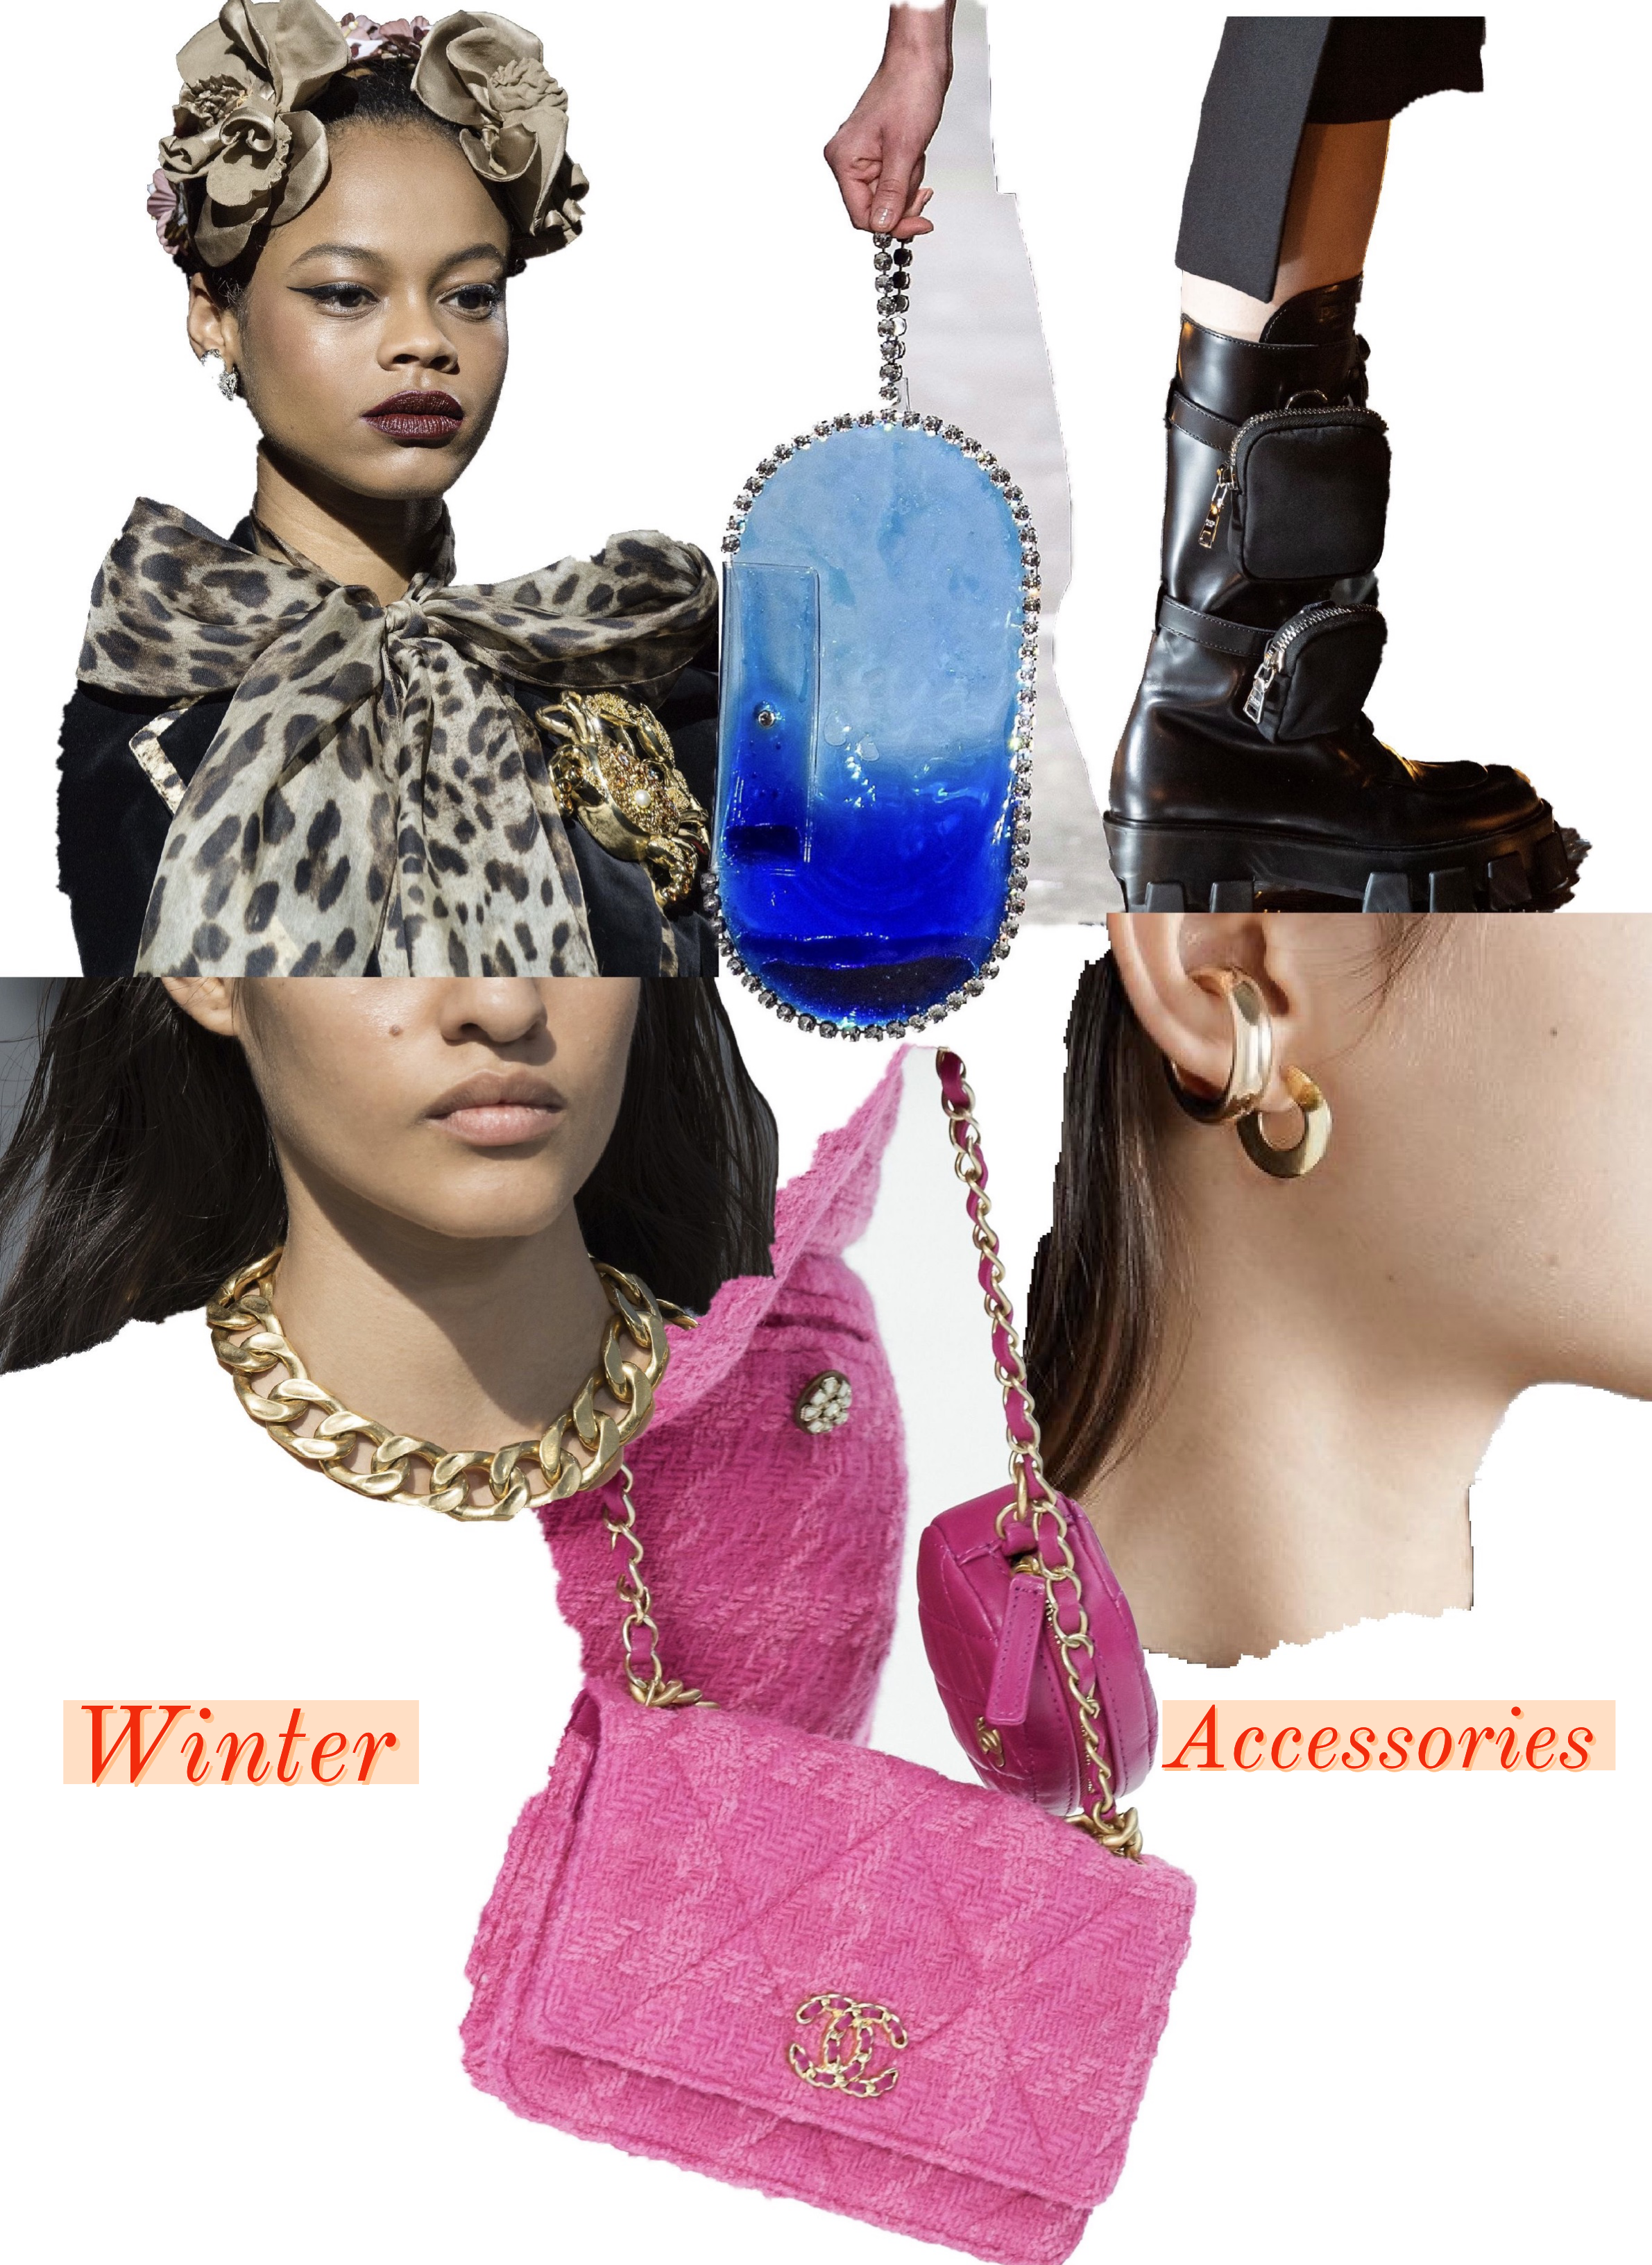 GET YOUR WINTER '19 OUTFITS EXCITING WITH THESE ACCESSORIES!